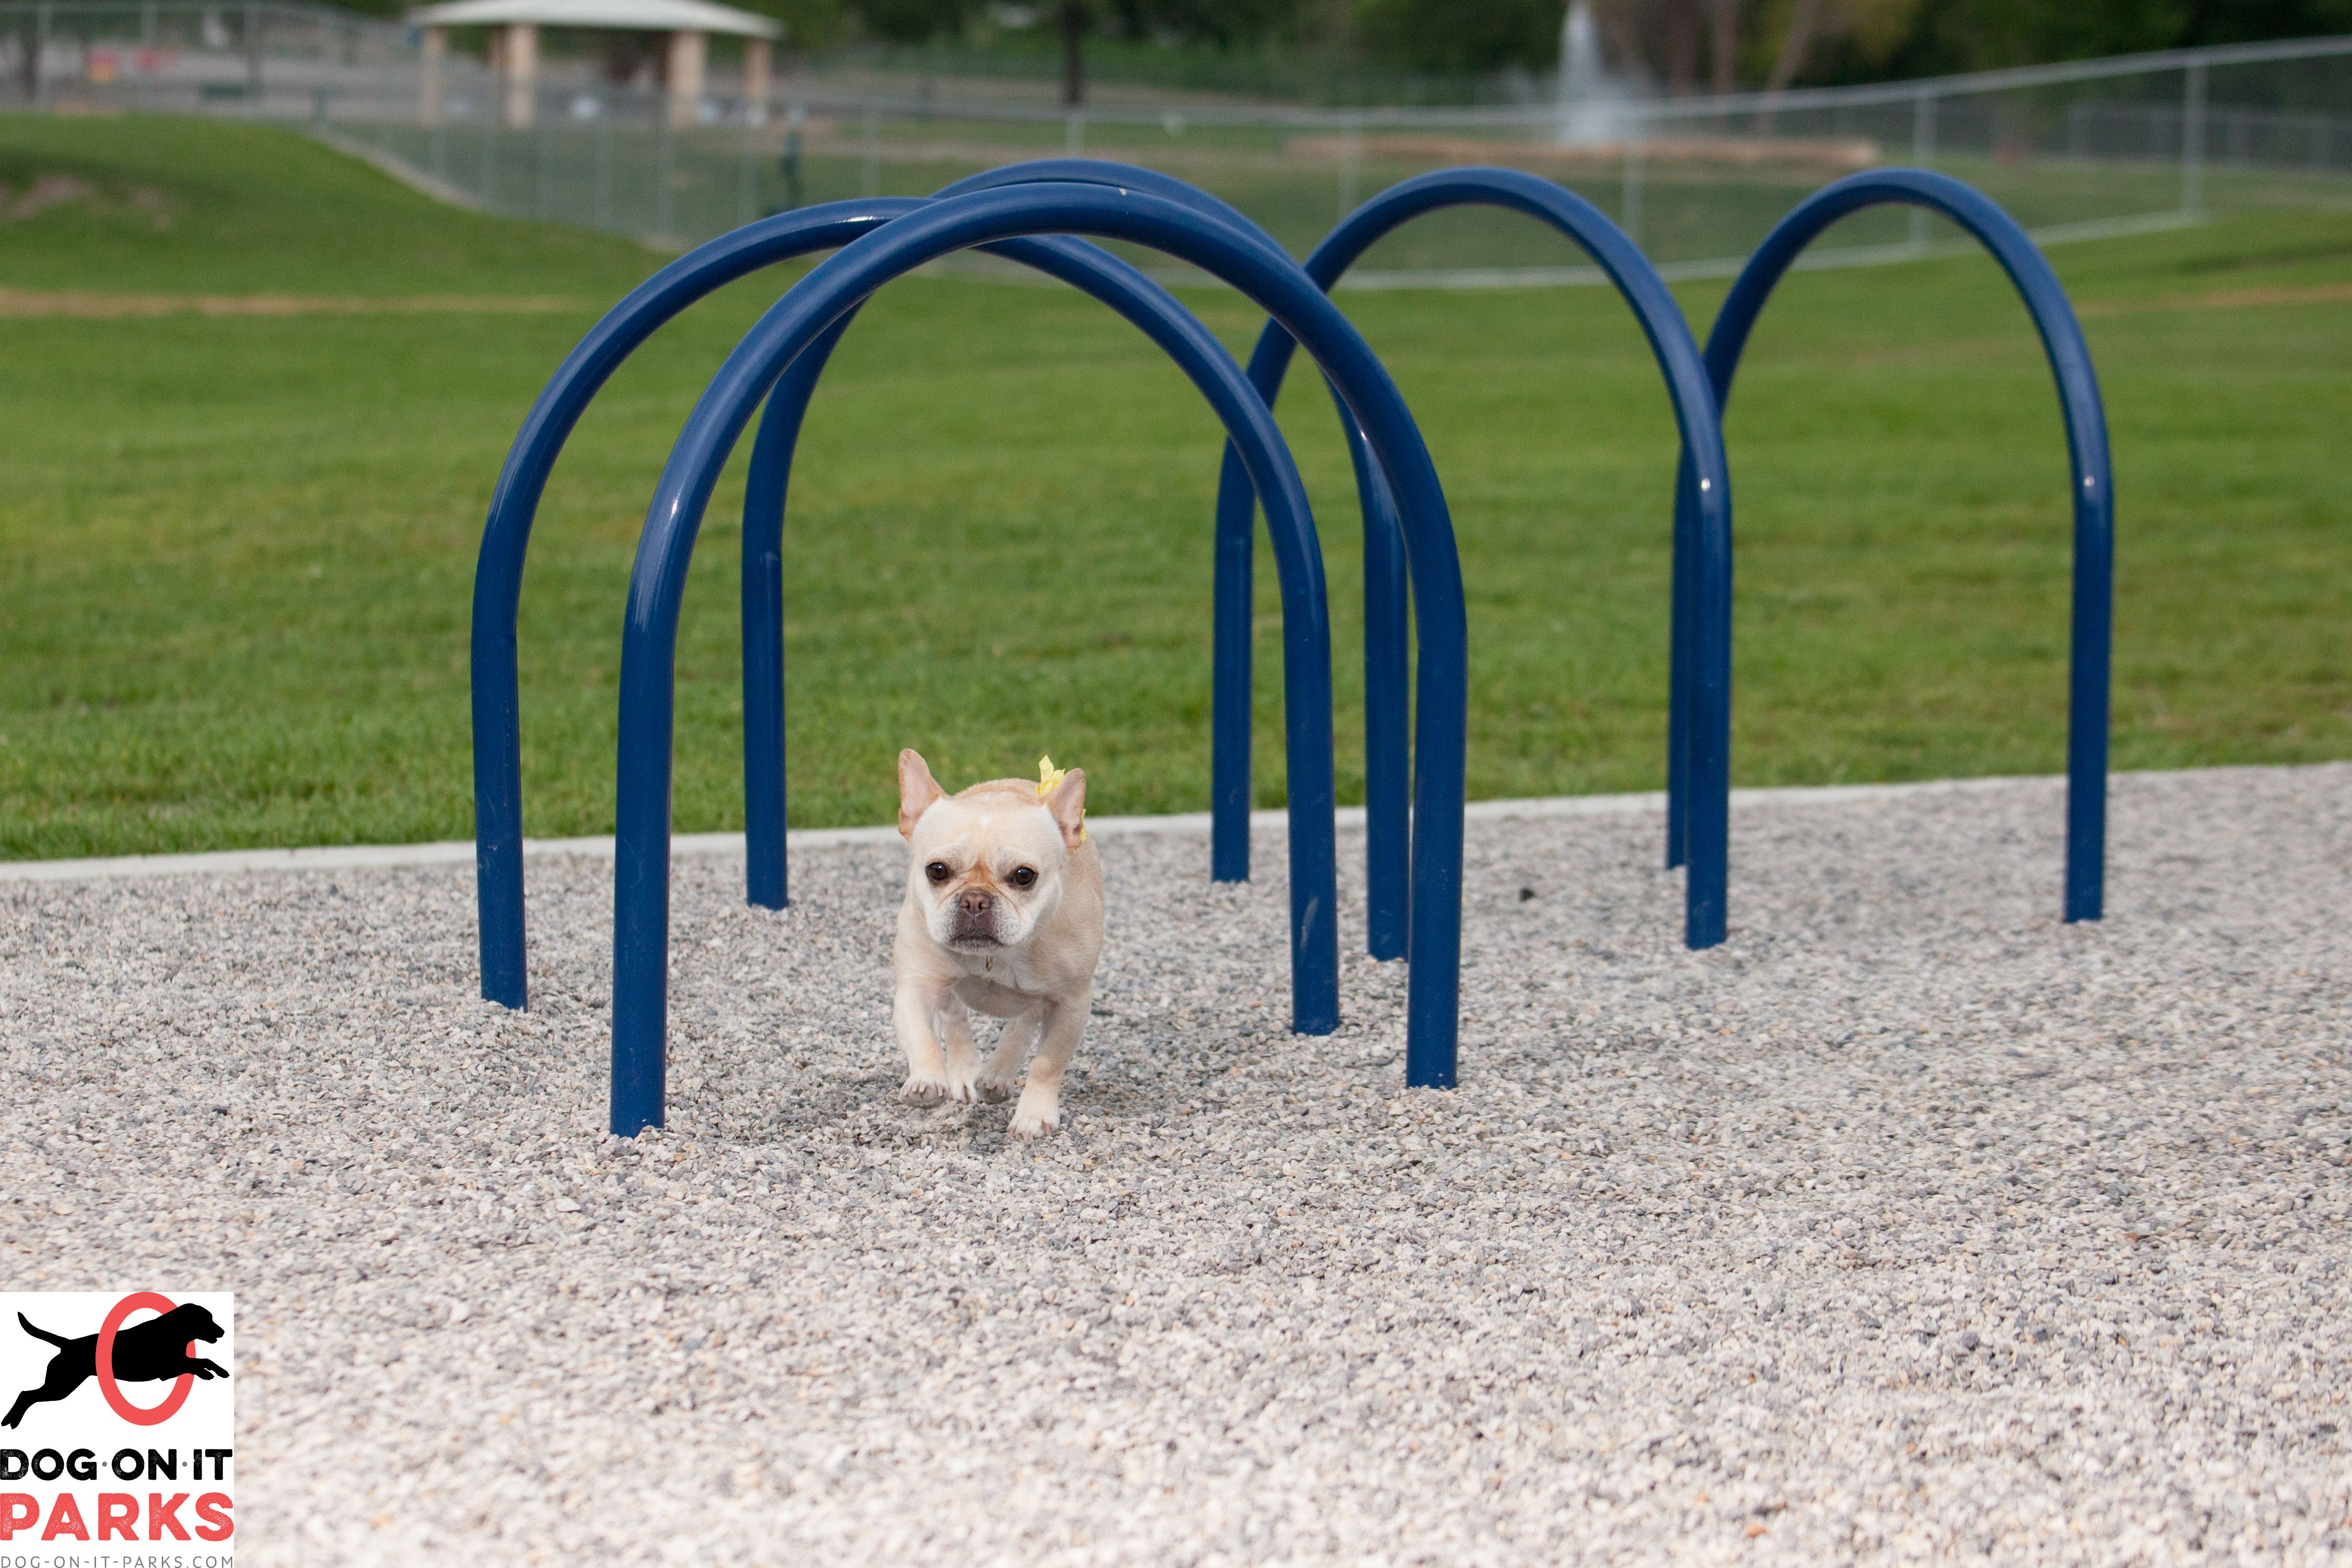 Hound Hoops Similar To Our Popular Tunnels But More Challenging Due To The Open Design Your Pup Can Also Practice Weaving Around Dog Park Hound Dog Agility